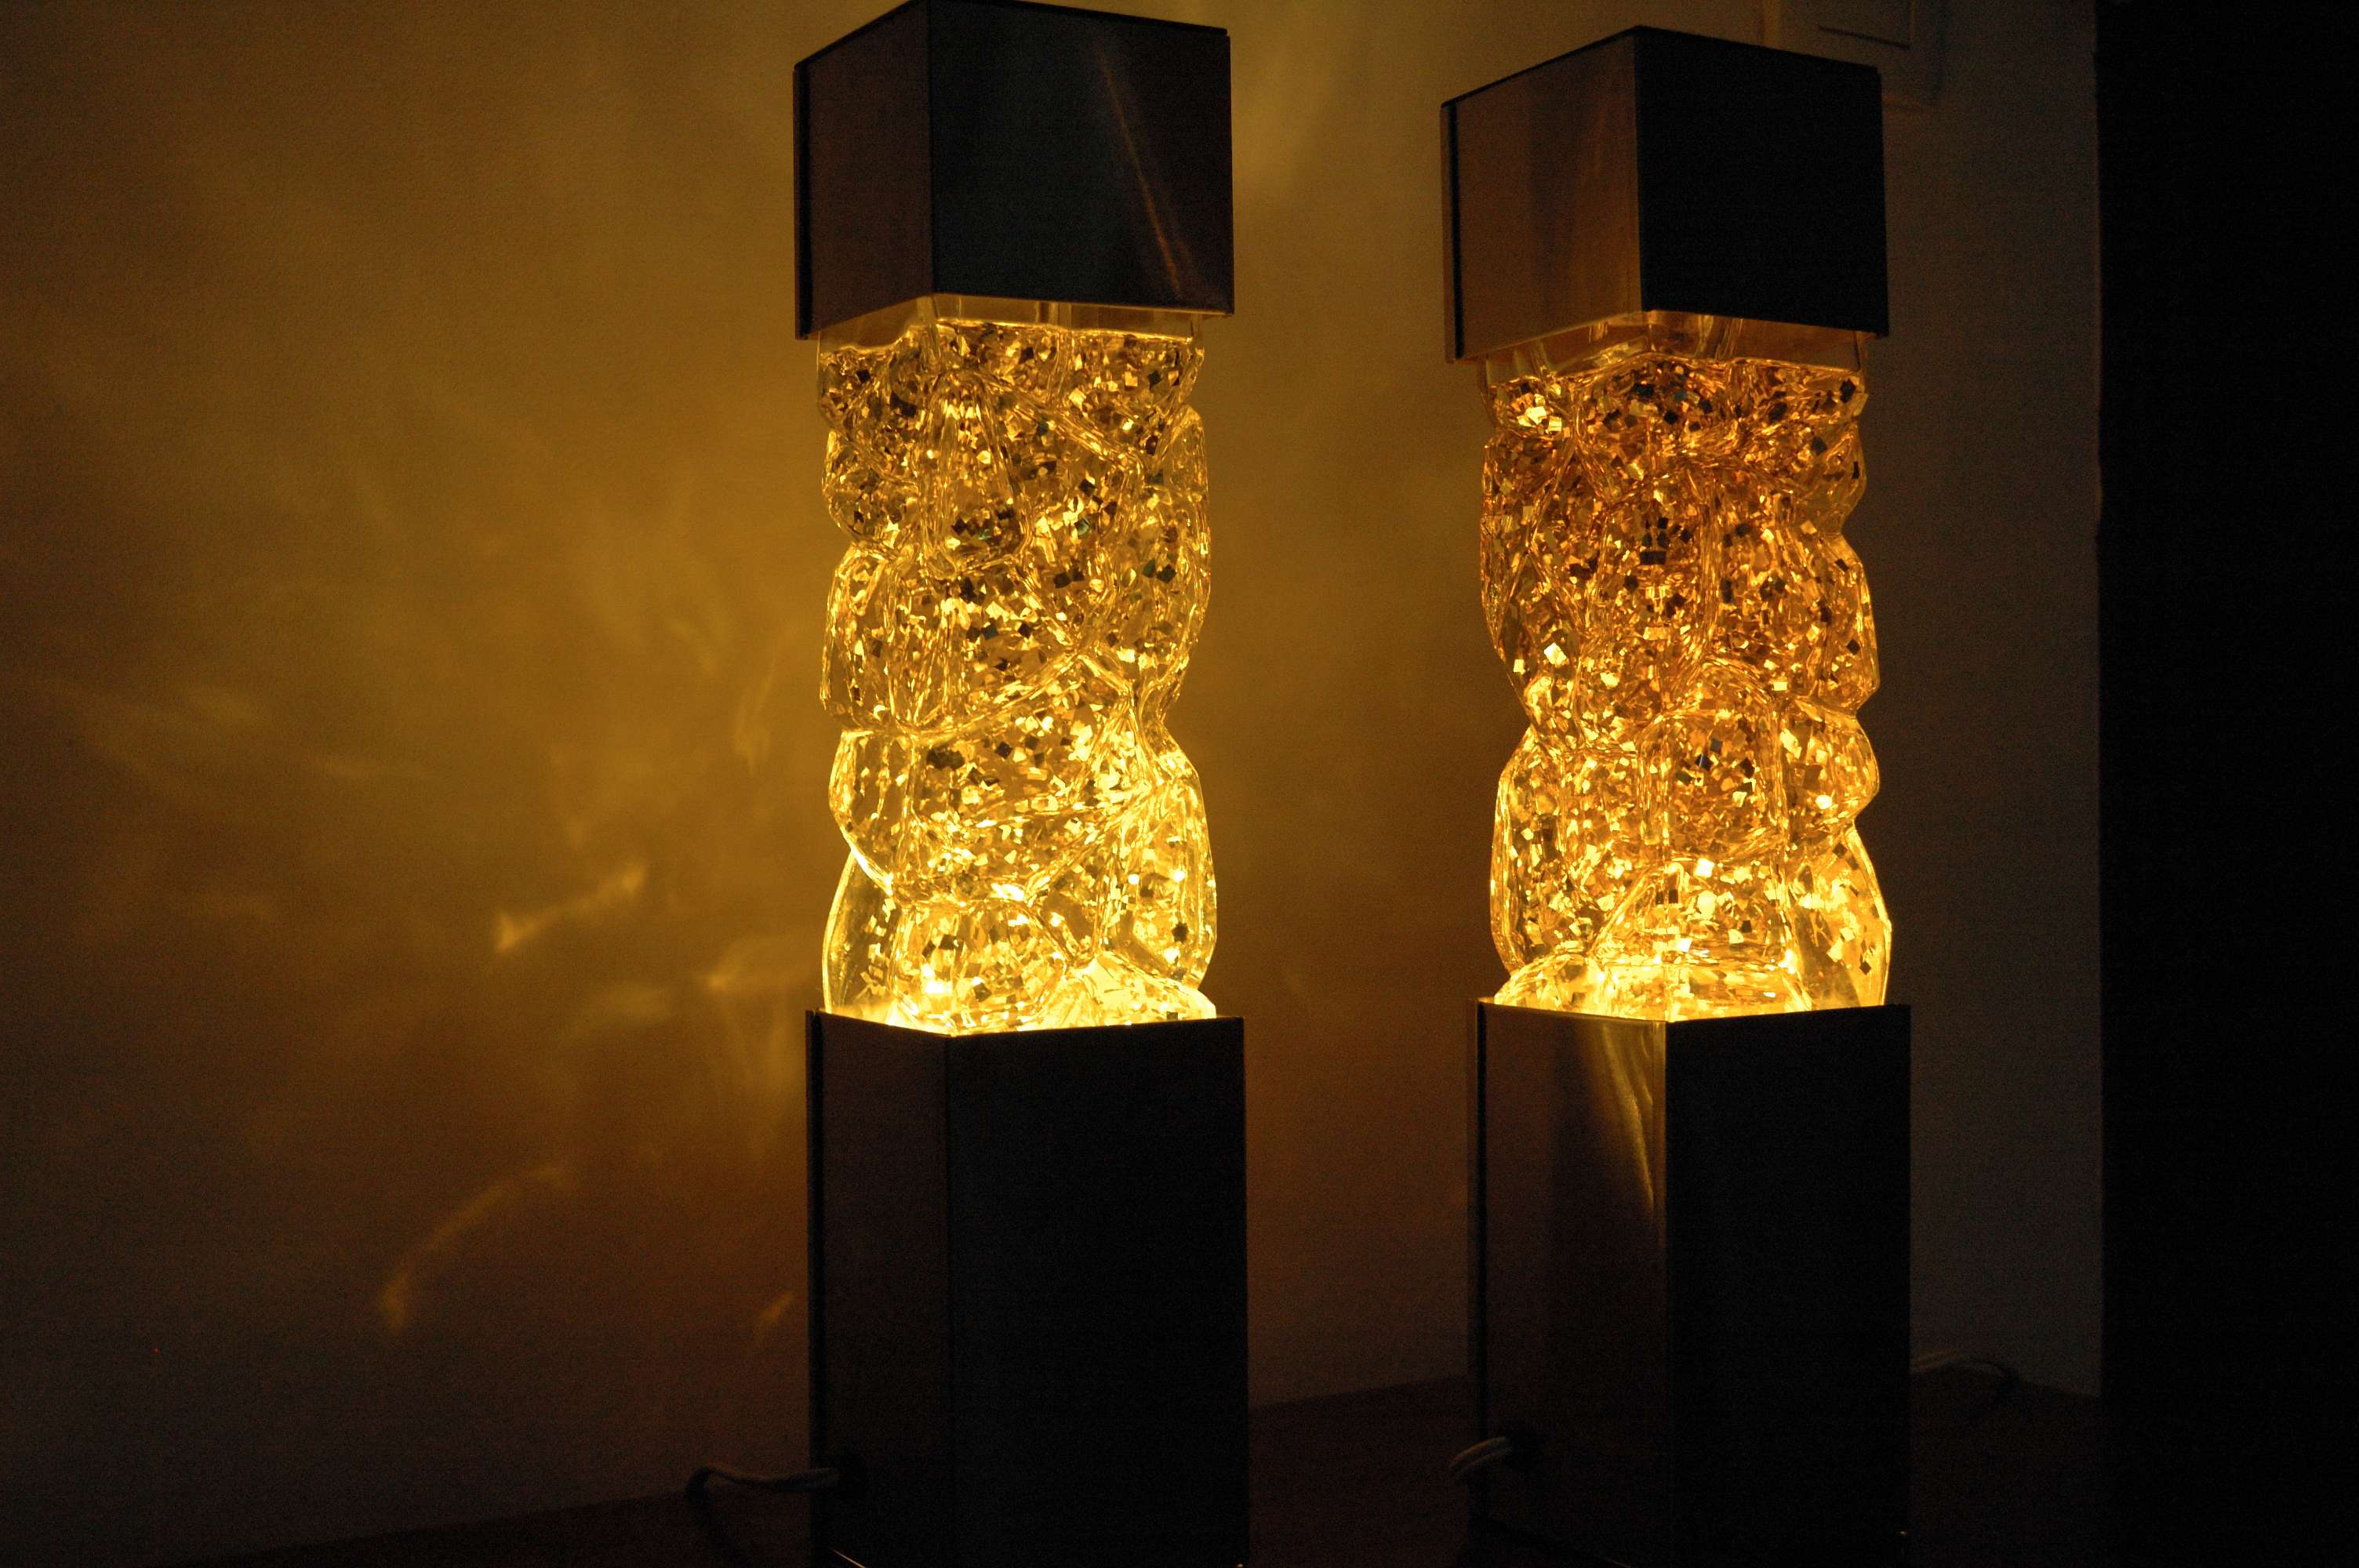 70s Lamps Never Lose Their Charms Whether They Are New Or